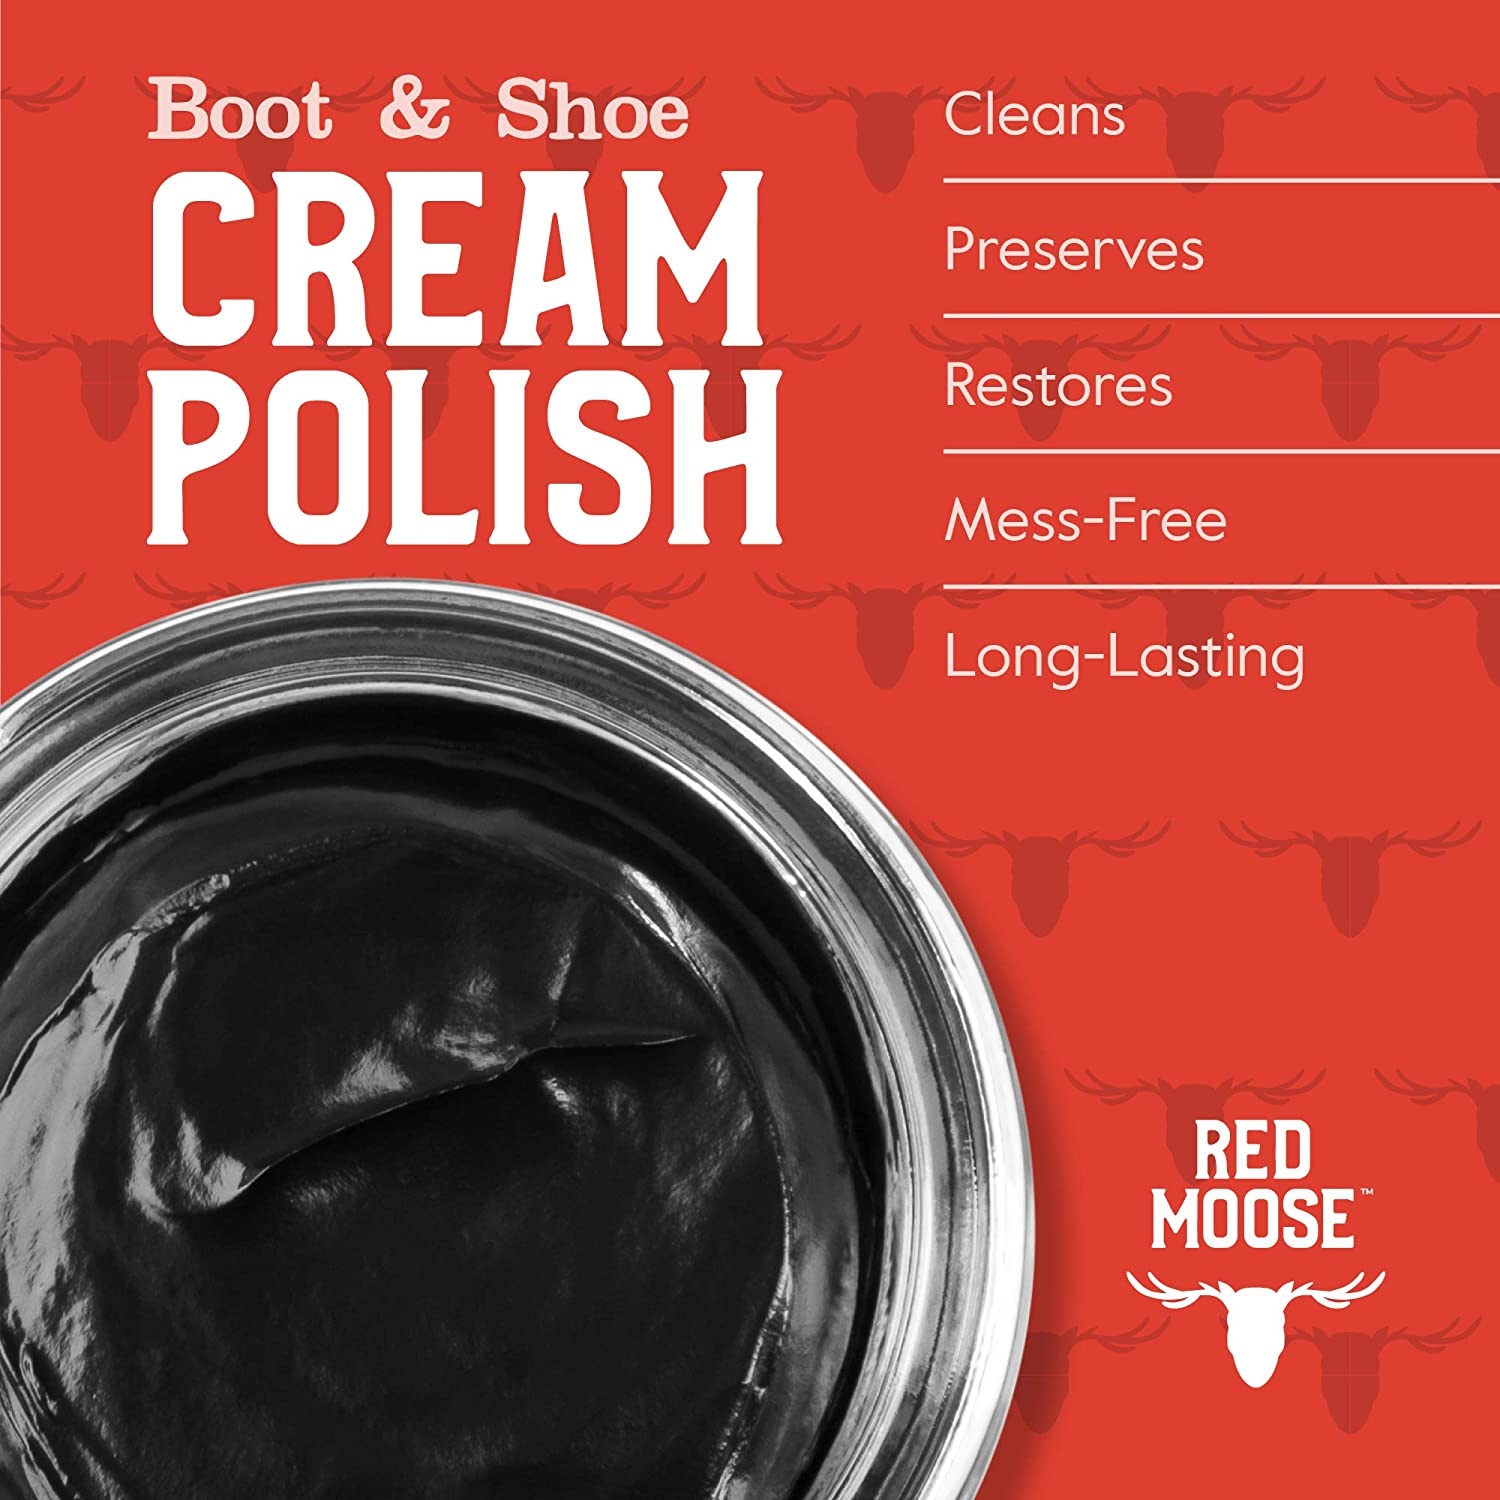 Red Moose Black Boot and Shoe Cream Polish - Made in the USA: Shoes